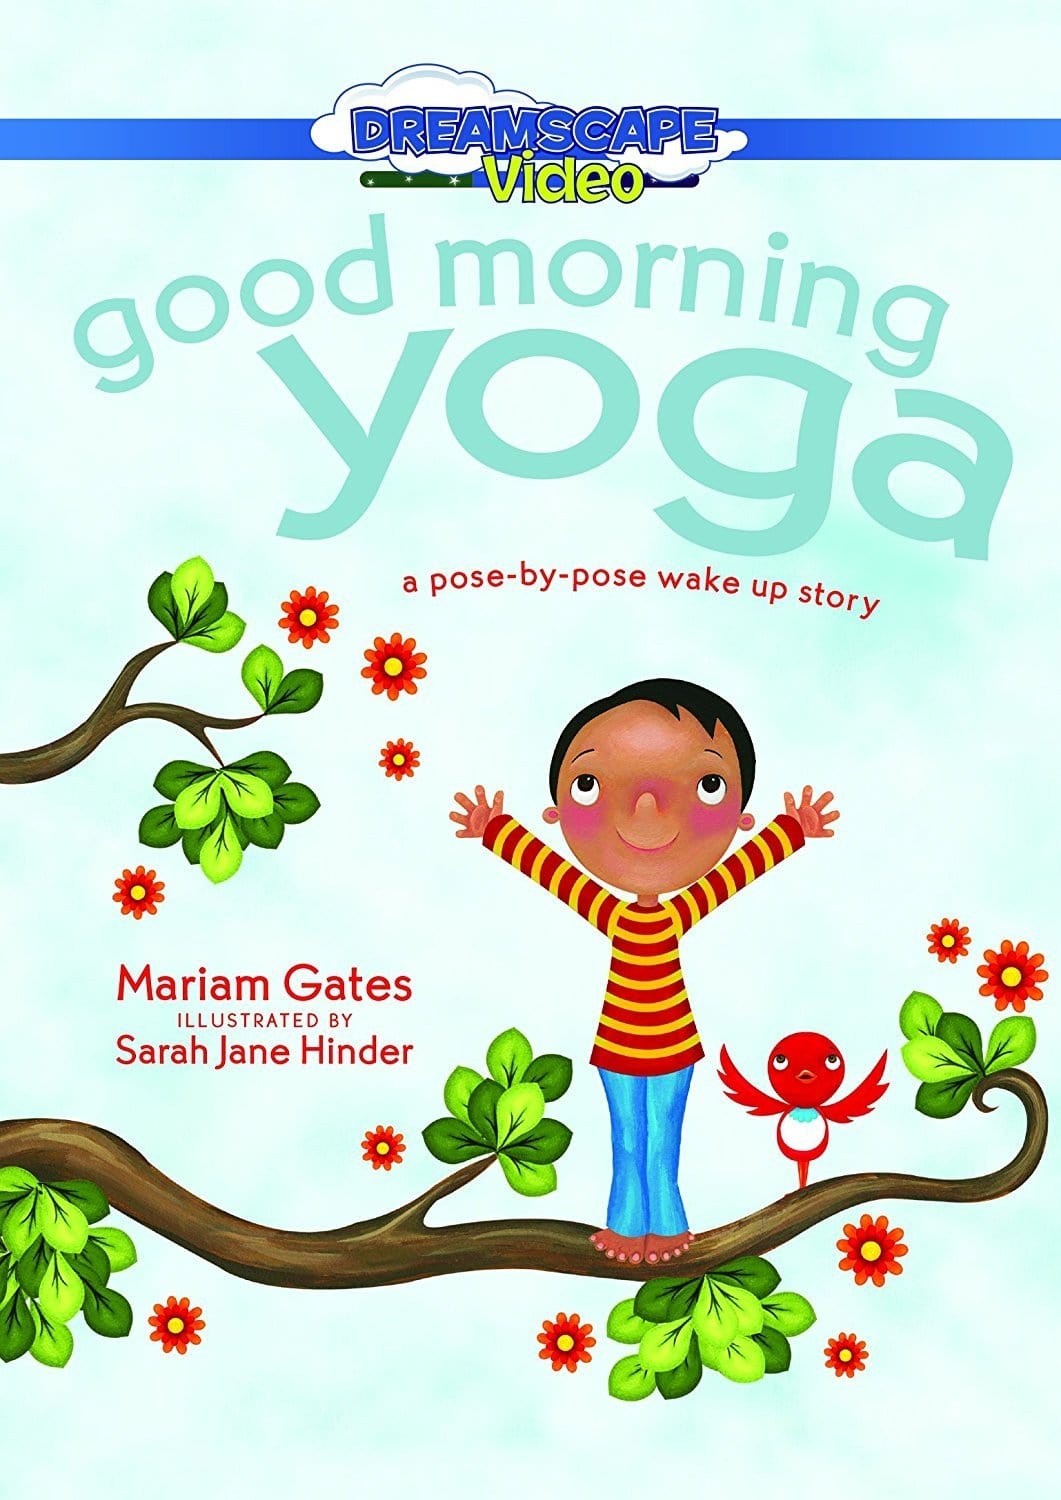 Good Morning Yoga: A Pose-by-Pose Wake Up Story (2017)